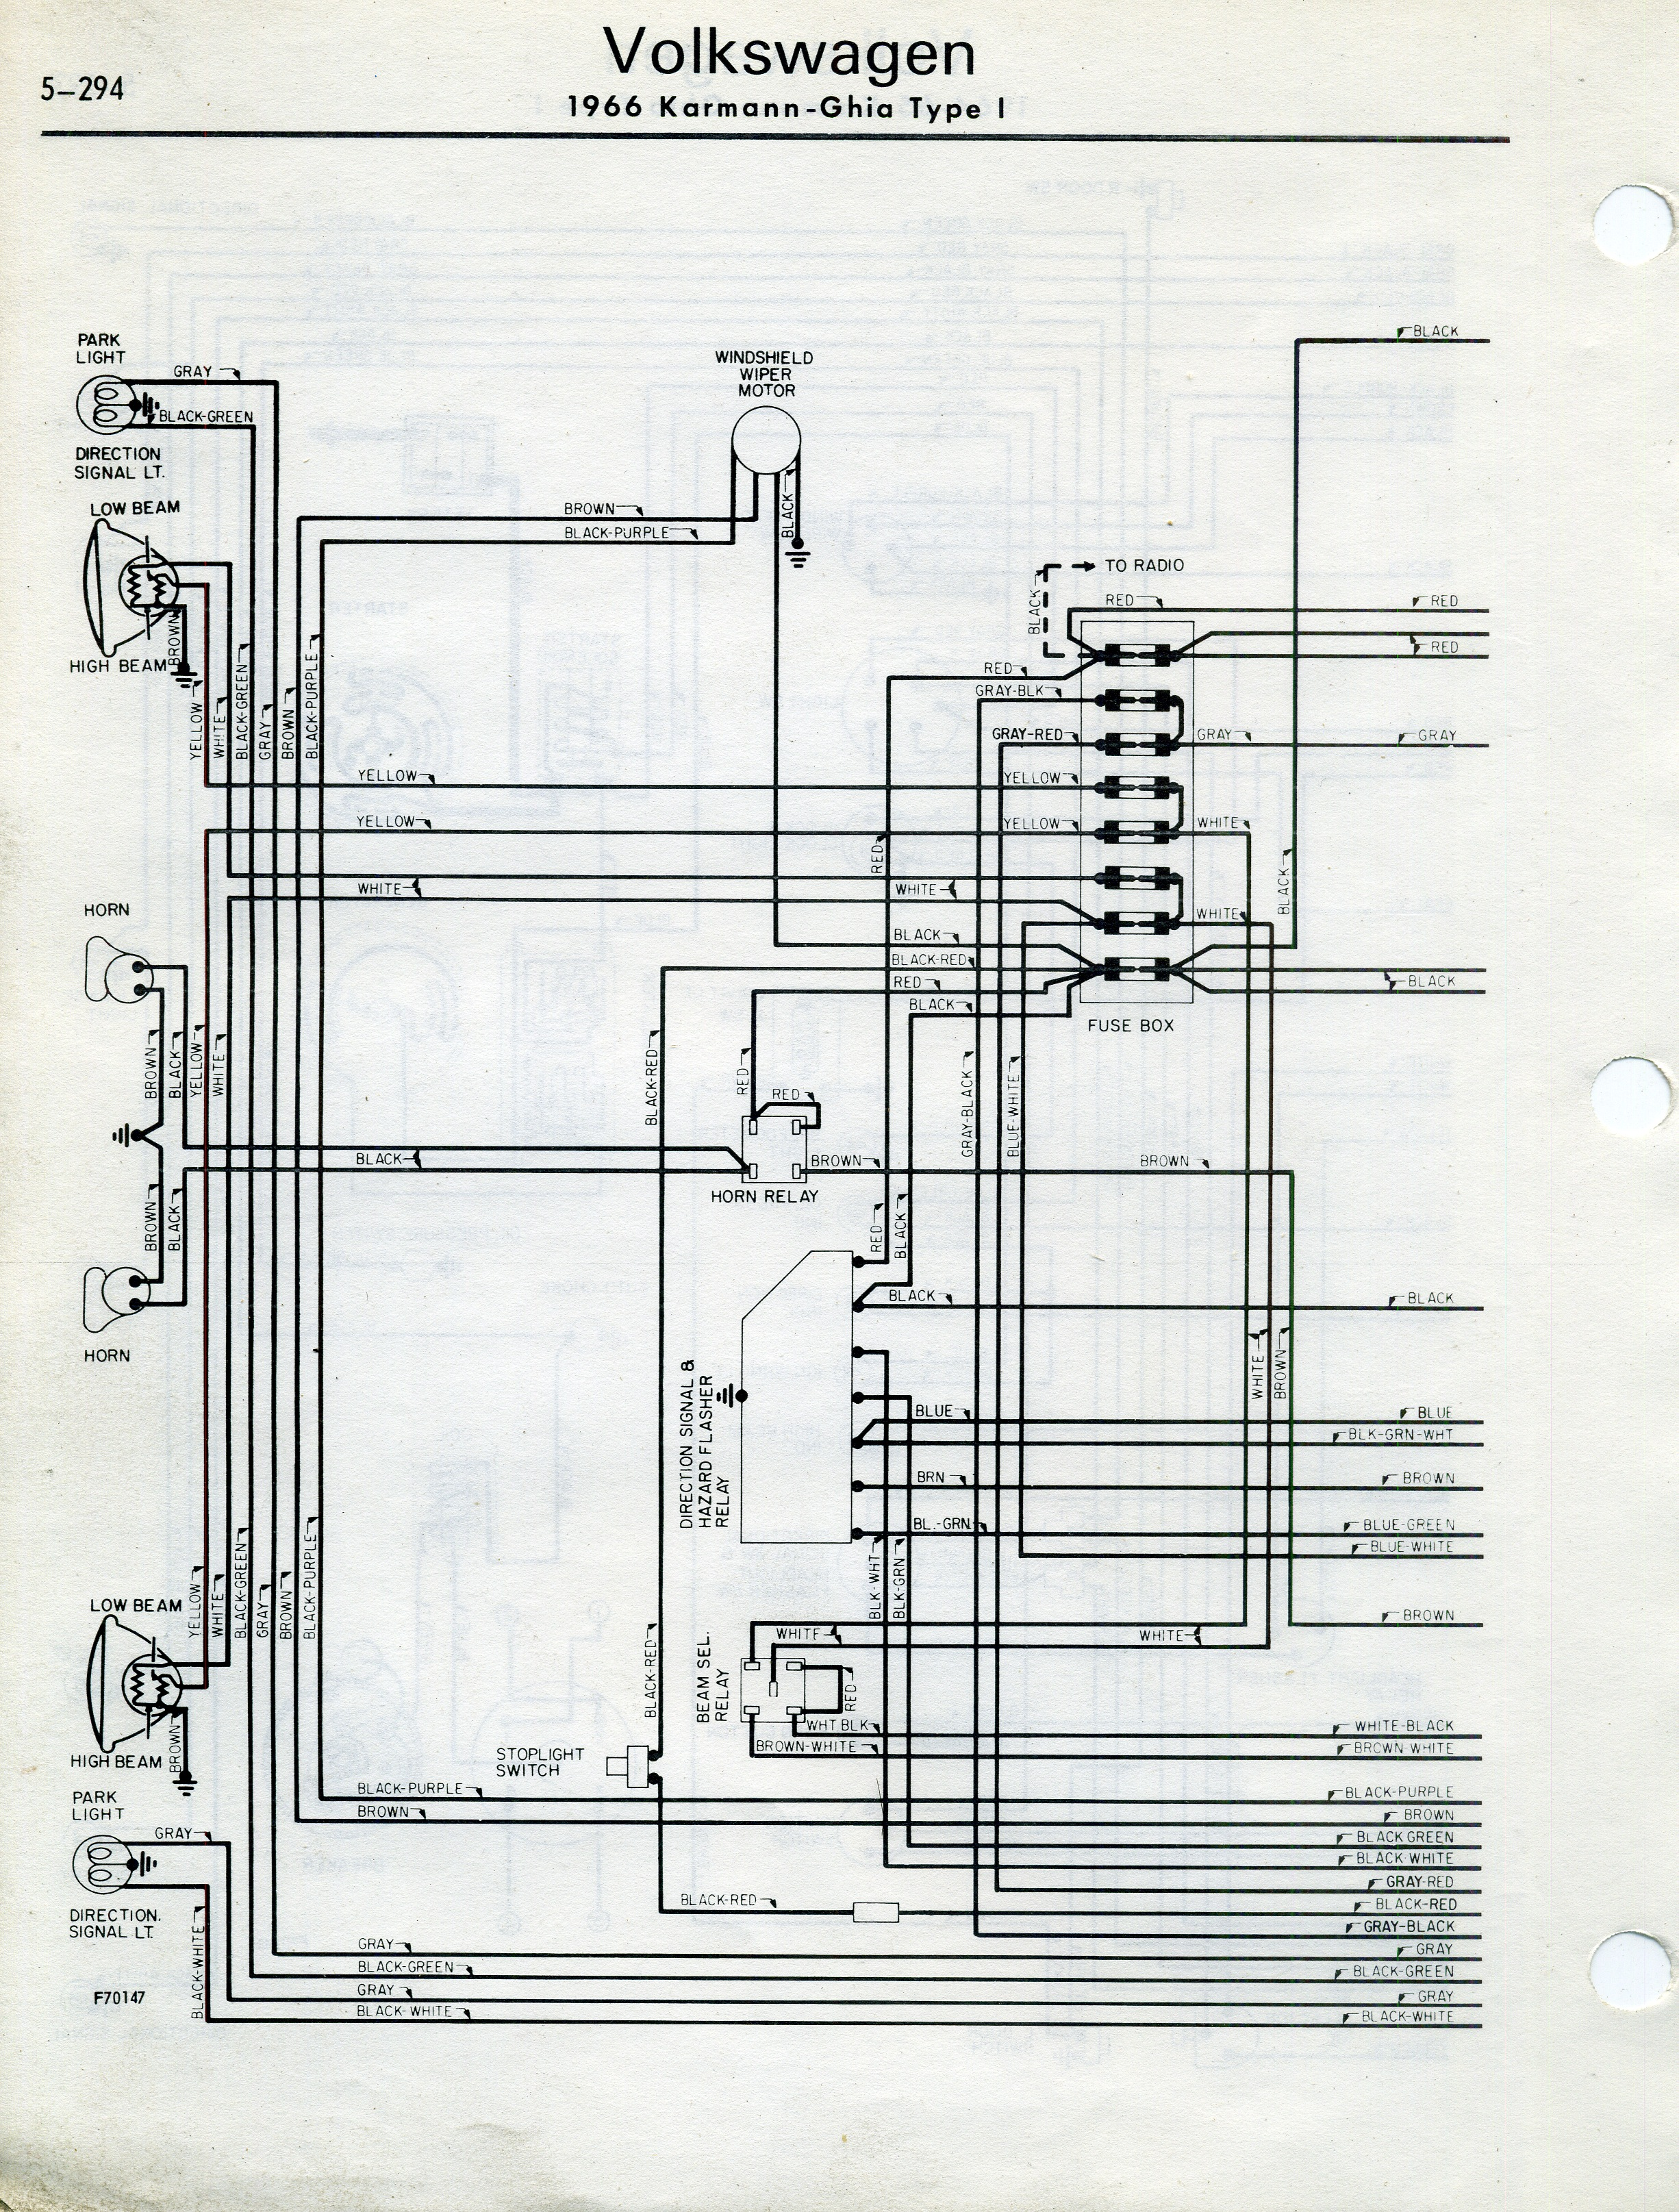 Ap27 Hf Daf Wiring Diagram,Hf • Wiring Diagram Database